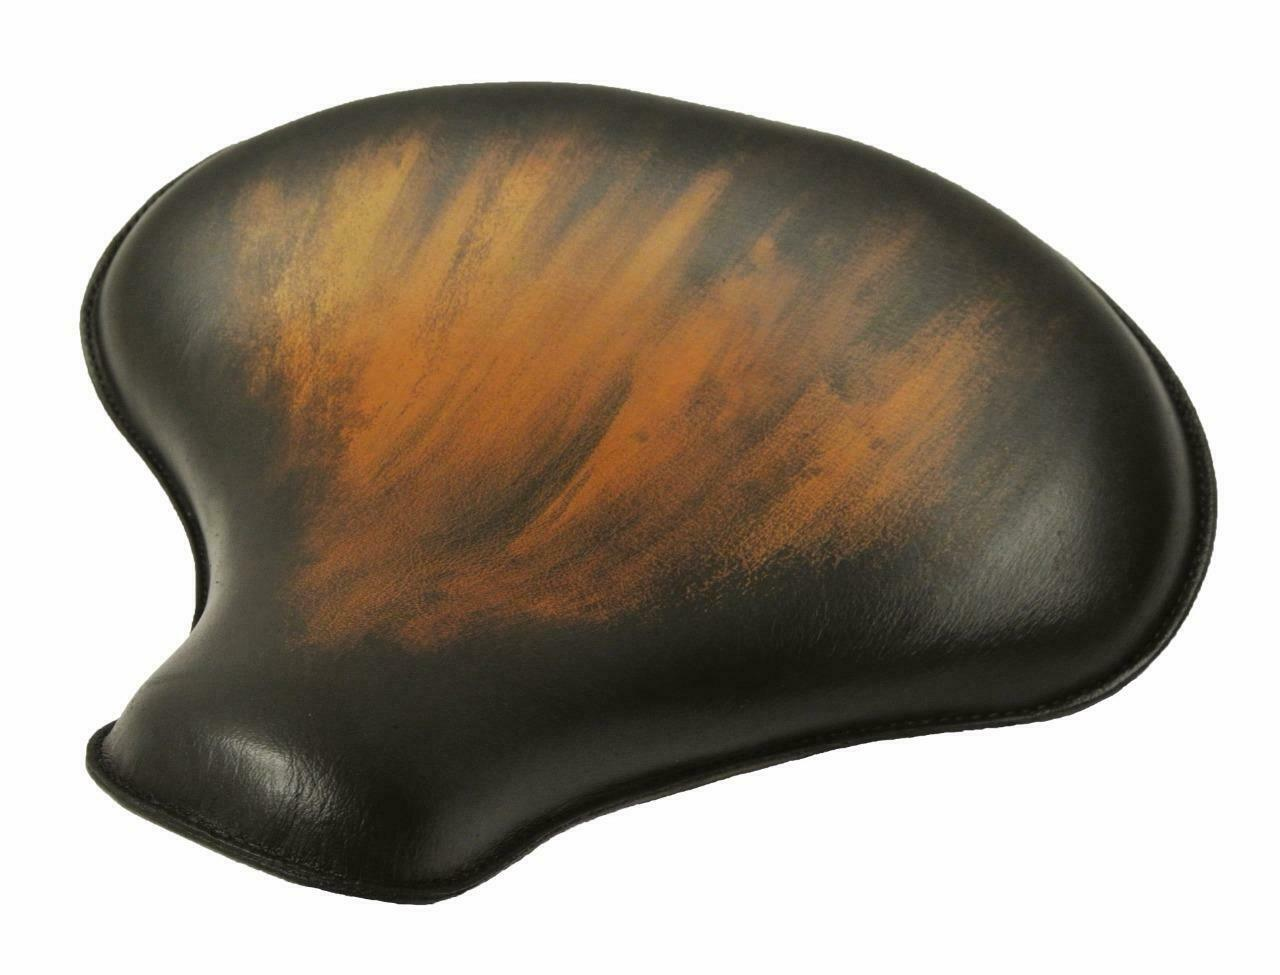 Spring Solo Tractor Seat 15x14 AntiqueBrn Leather Harley Sportster Indian Scout